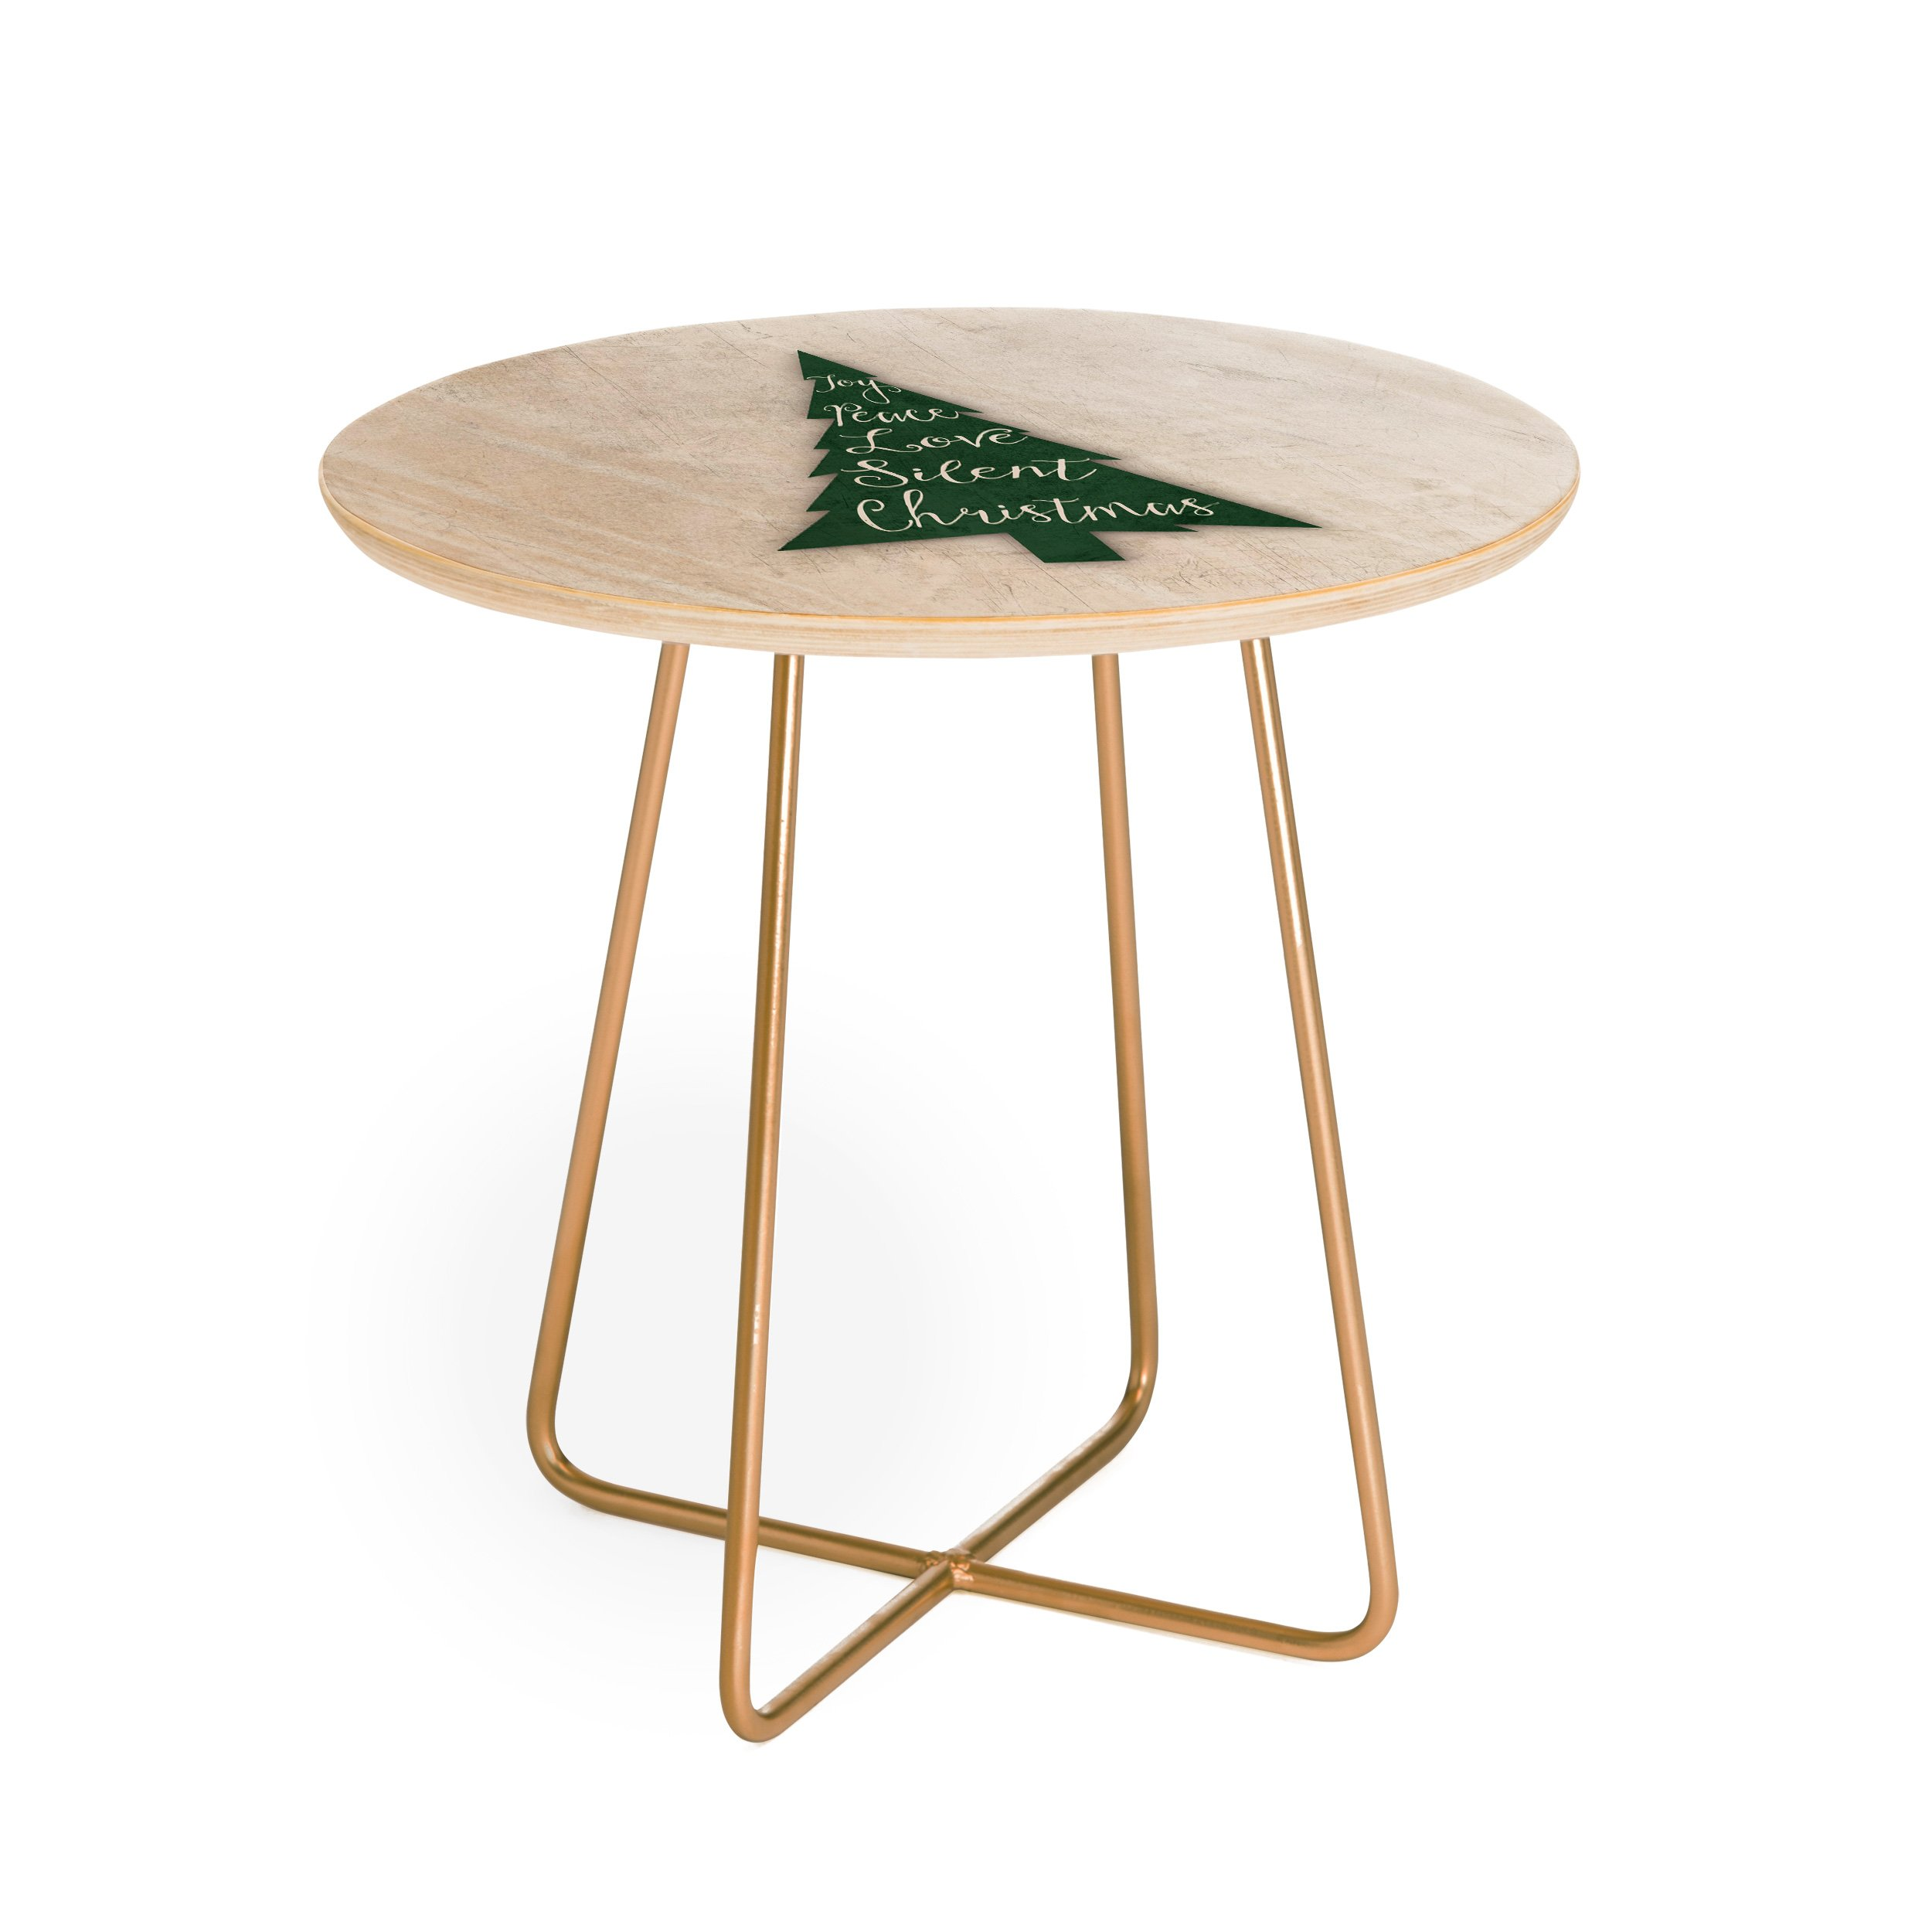 farmhouse christmas tree green round side table monika strigel white background square aston gold outdoor small stackable tables metal and glass end wine bar furniture wooden